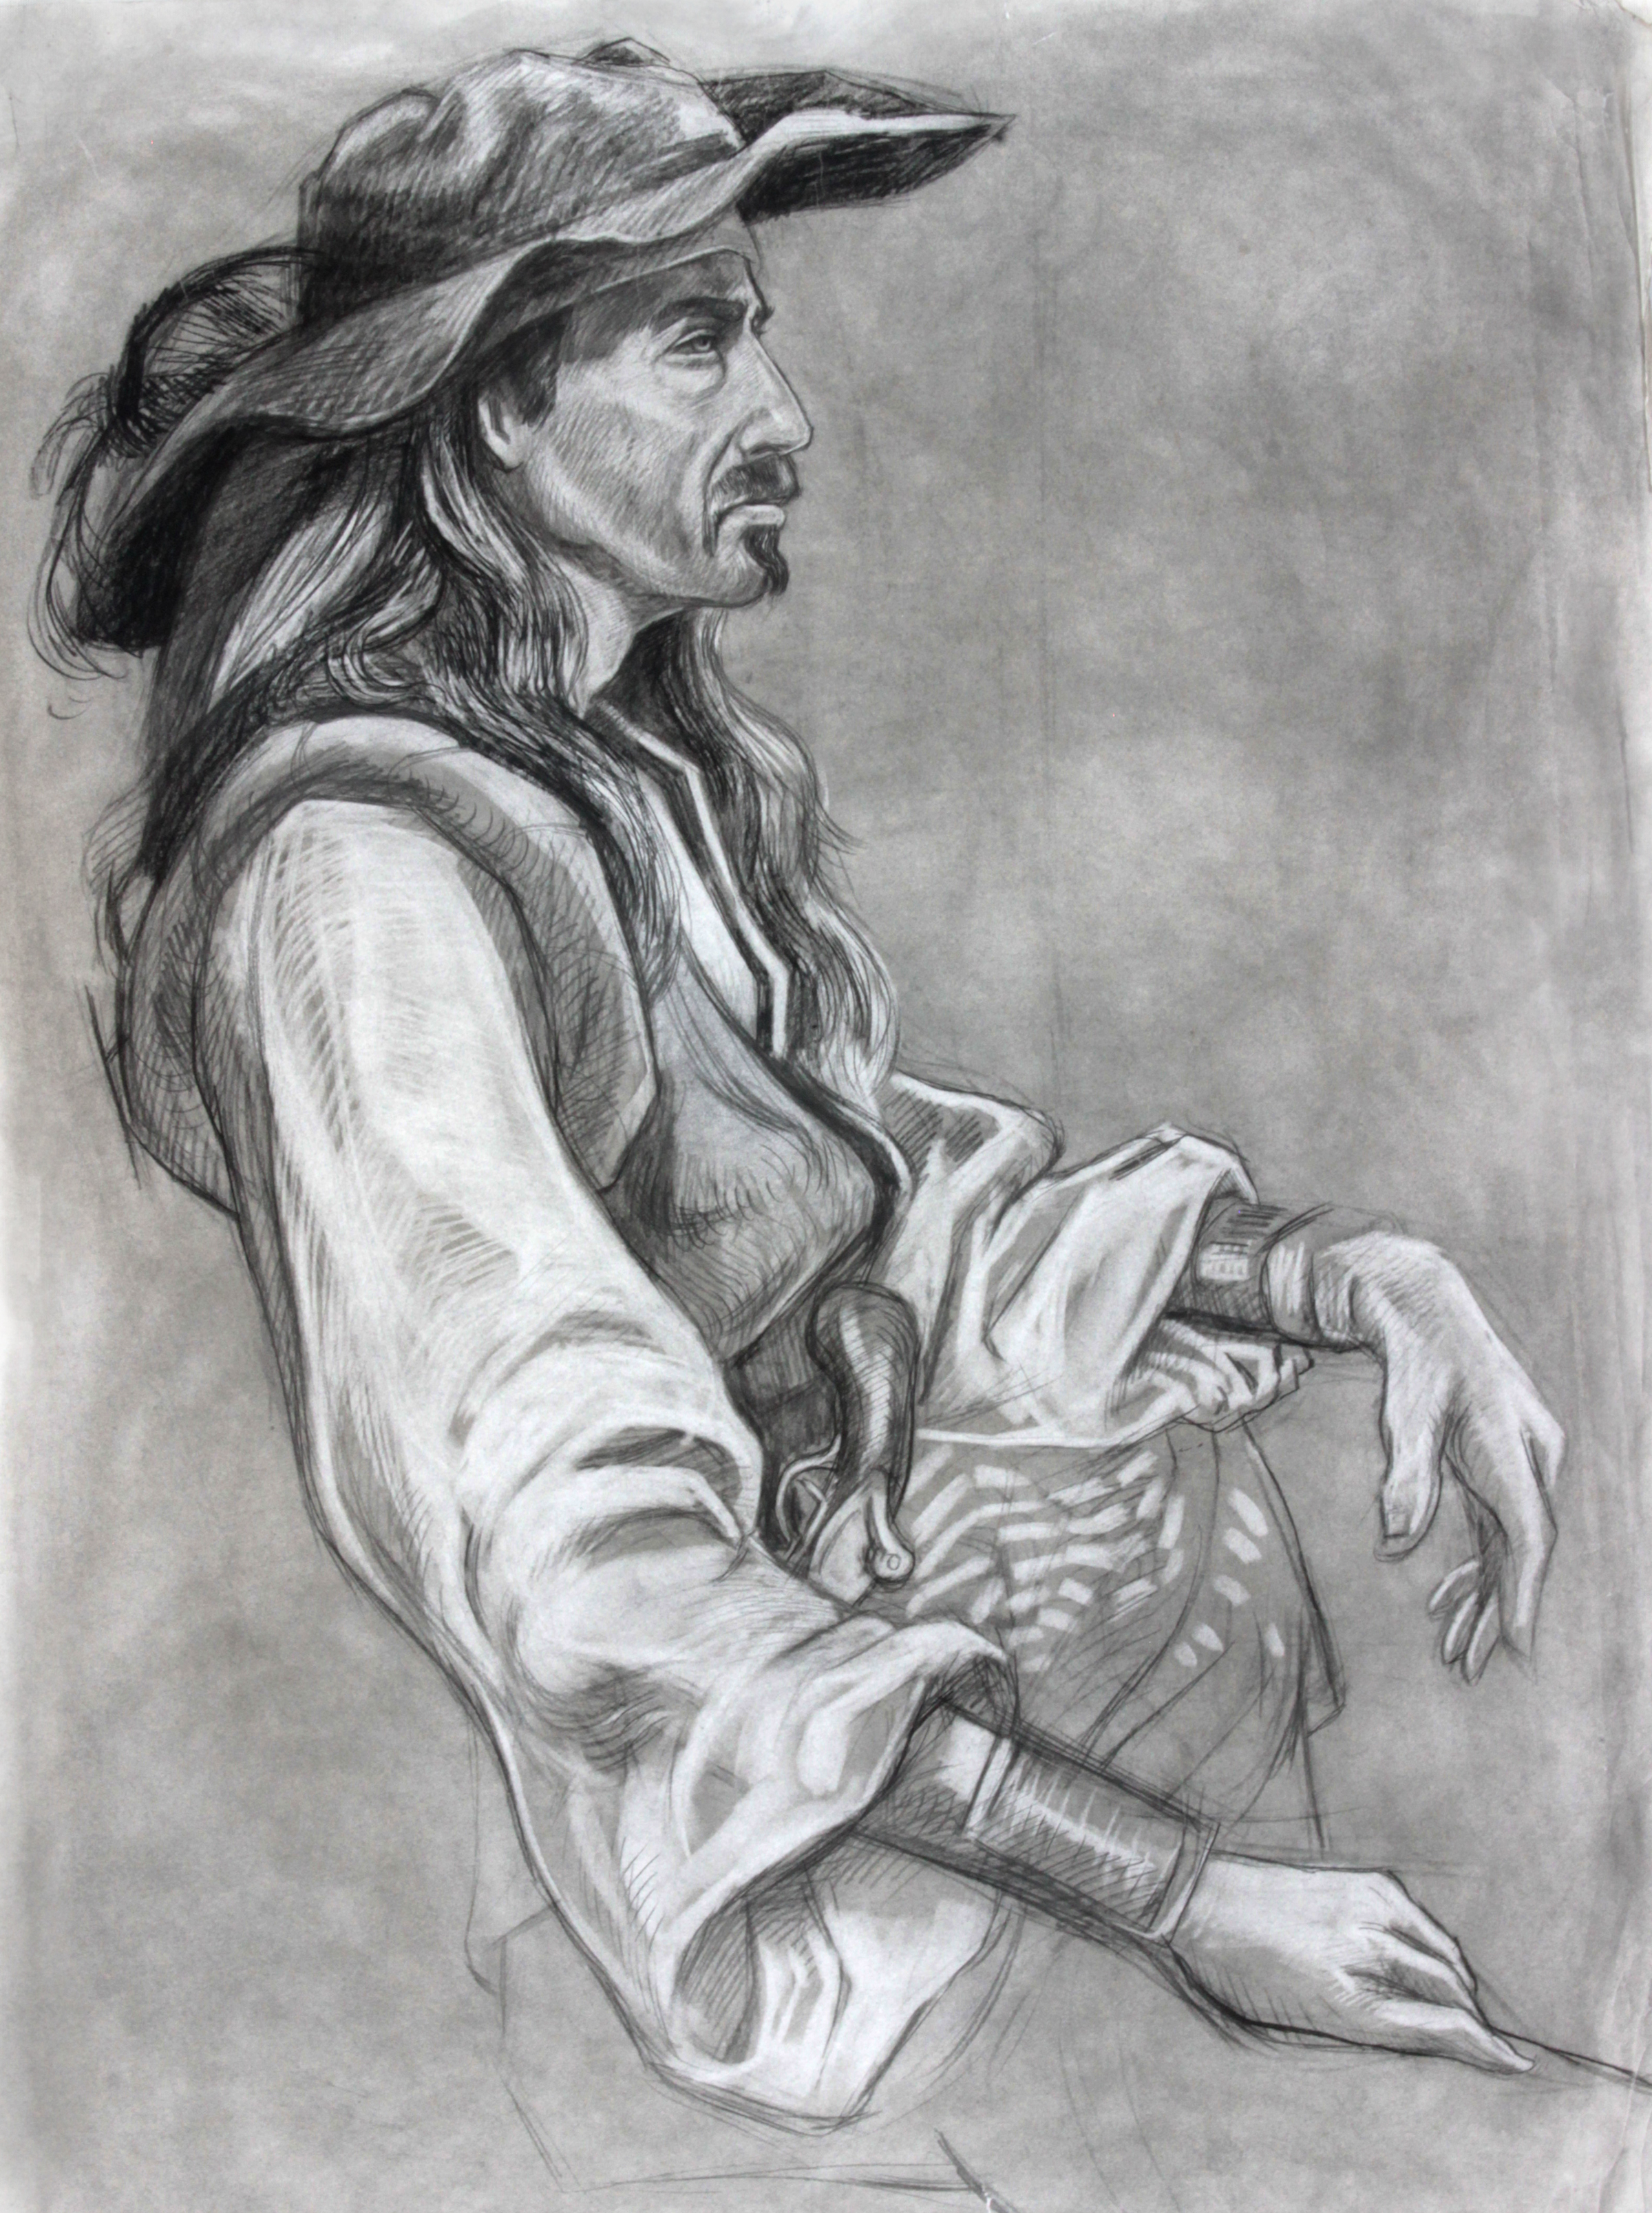 Nils Pirate Portrait